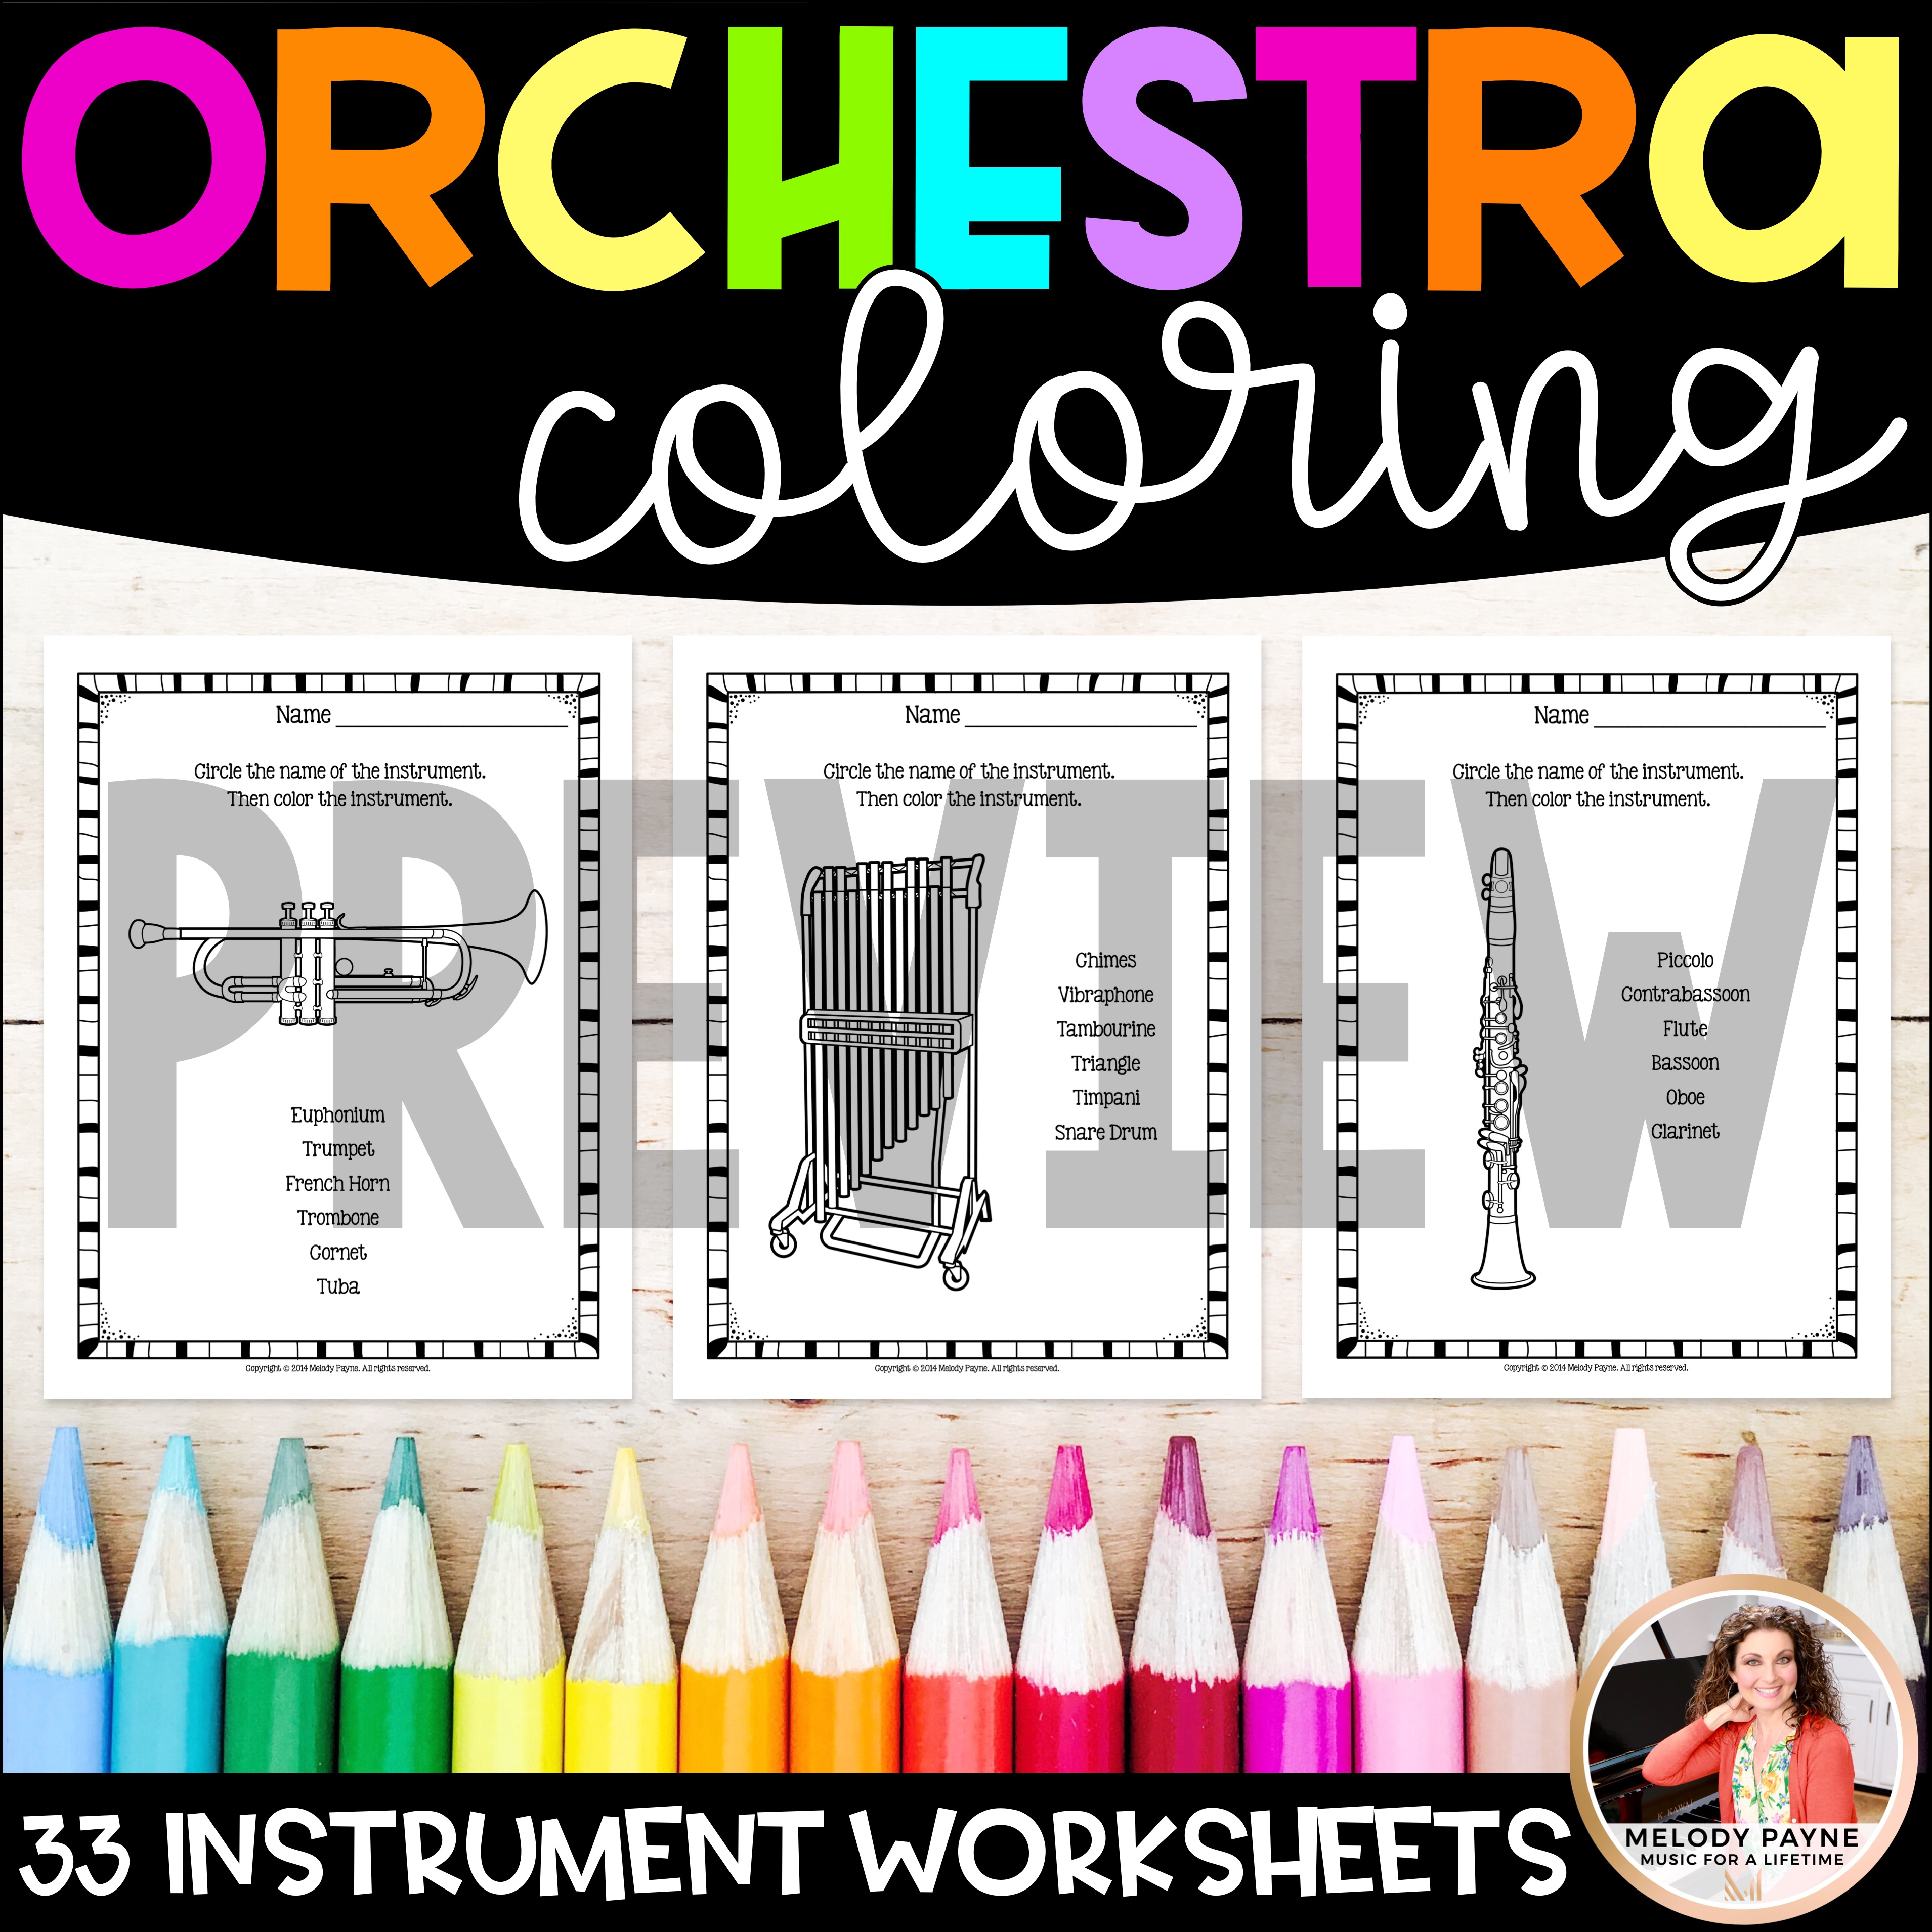 - Instrument Coloring Sheets & Worksheets: Orchestra - Melody Payne